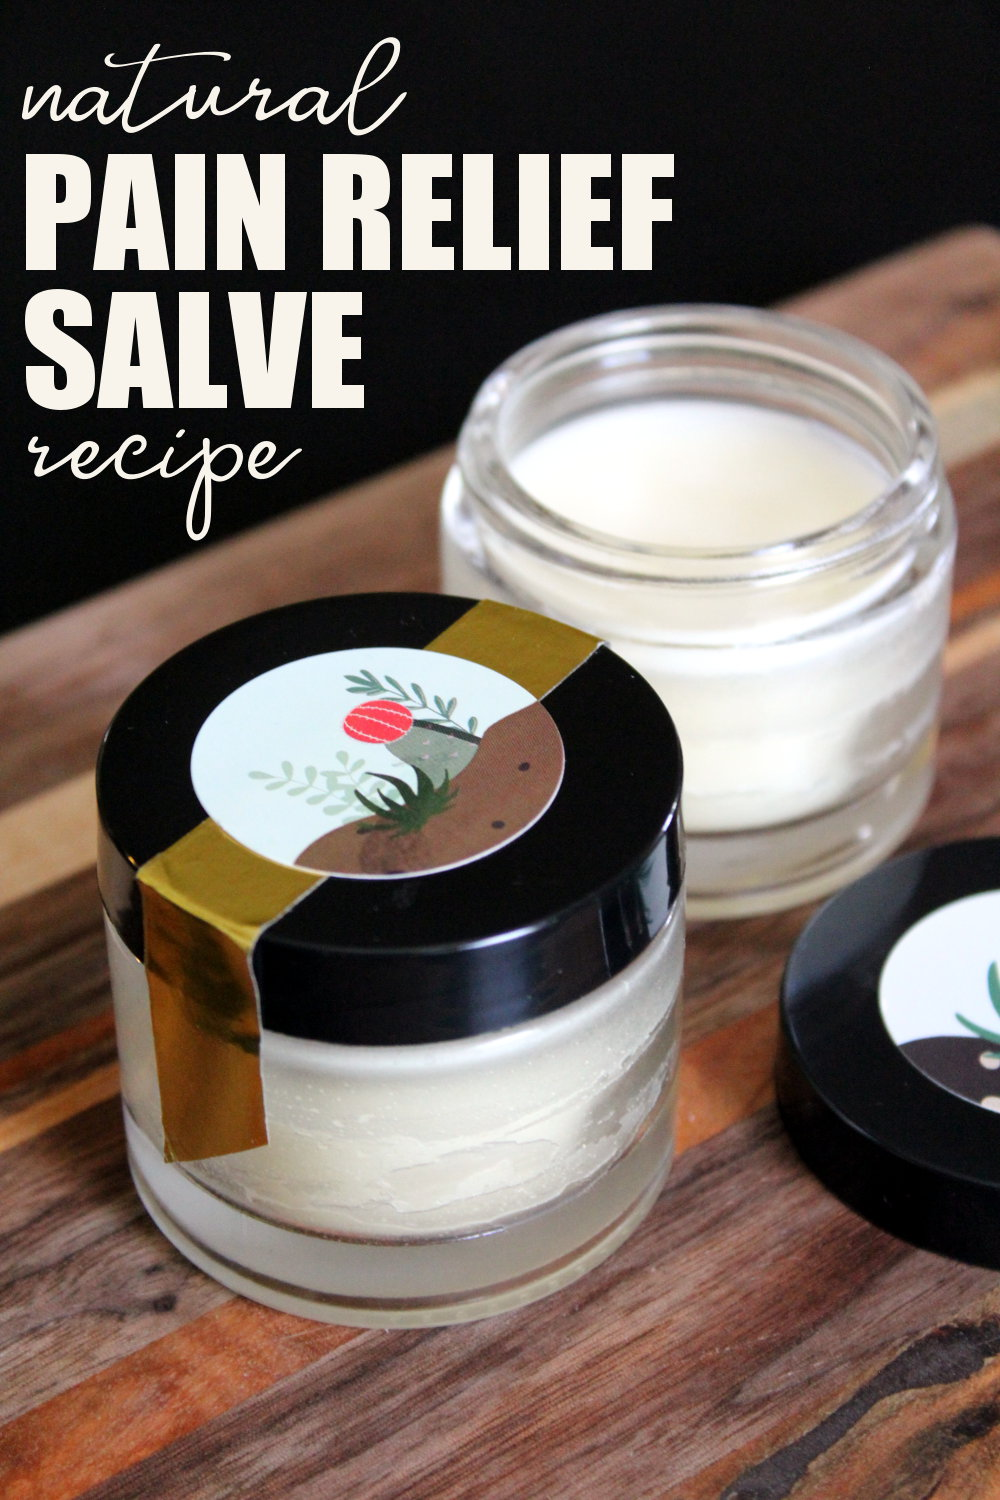 This natural pain relief salve recipe with arnica and ginger essential oil is made with just four simple ingredients. So whether you're short on money or simply need a quick DIY, then this natural pain remedy was created just for you. Formulated to relieve inflammation and ease pain, this natural pain relief salve recipe combines the medicinal skin care properties of arnica flowers & ginger essential oil caused by muscle pain, arthritis, sprains, fibromyalgia & carpal tunnel.